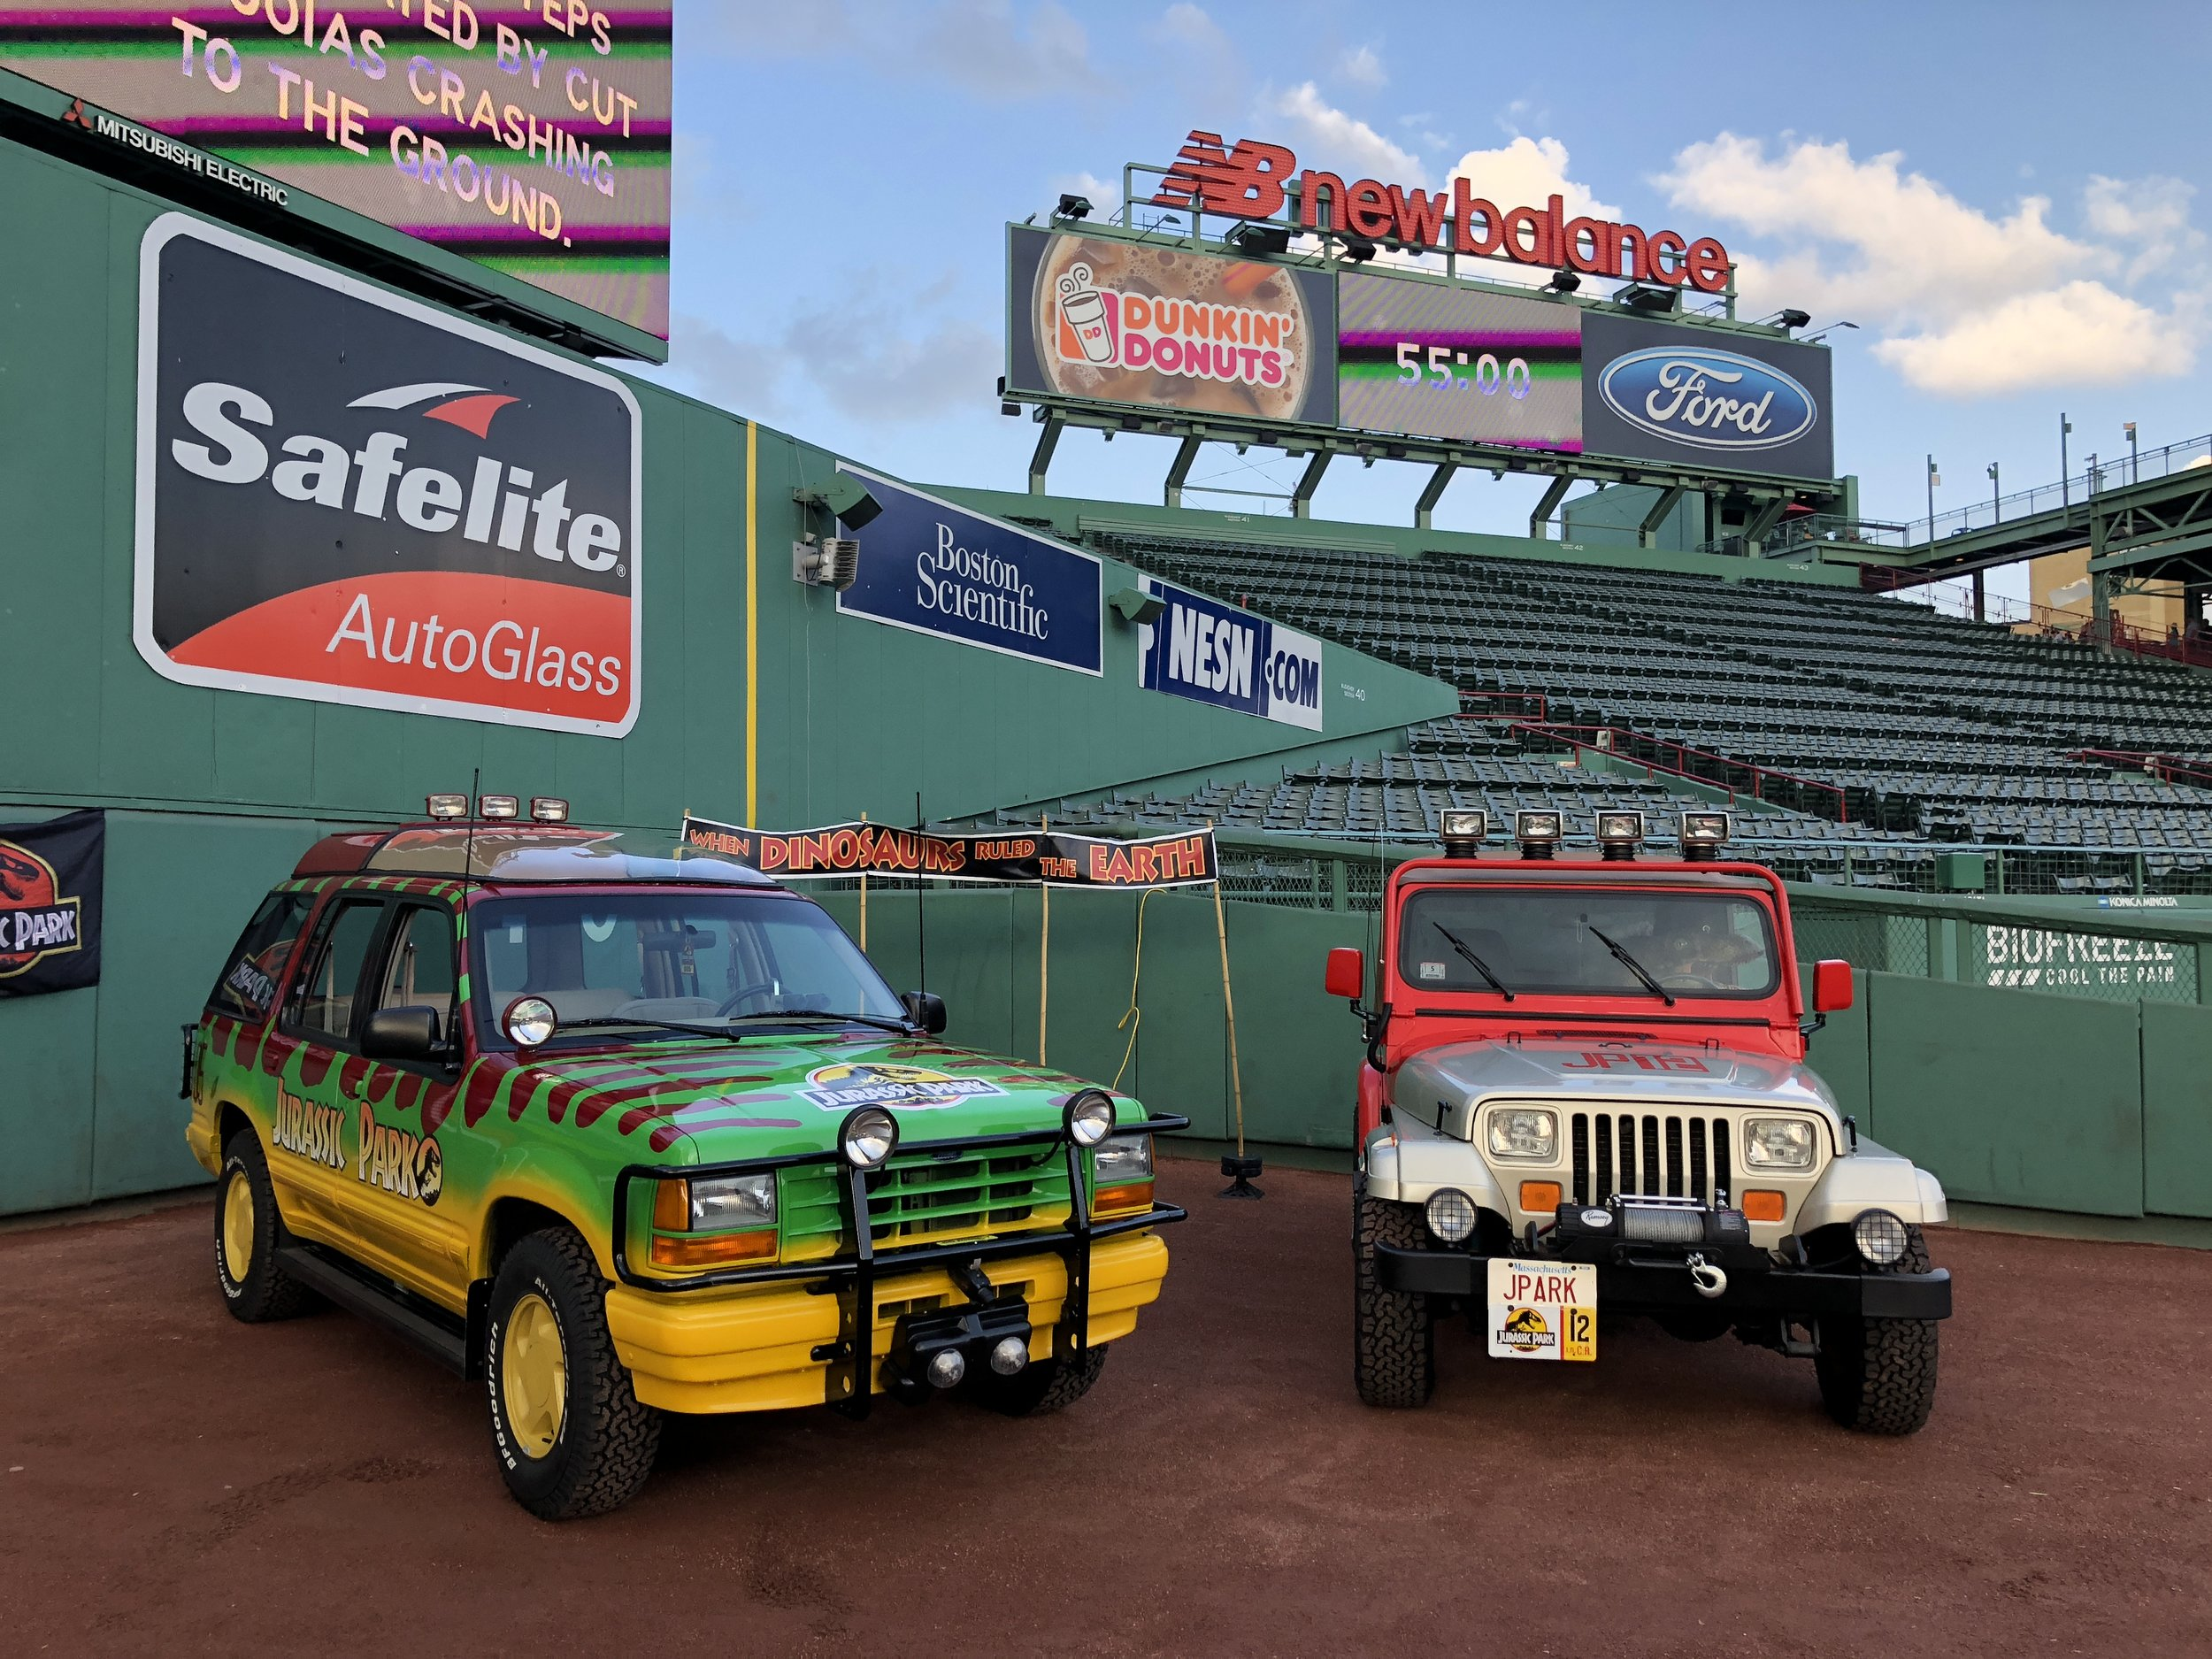 Our Jurassic Park vehicles at Fenway Park in Boston, MA